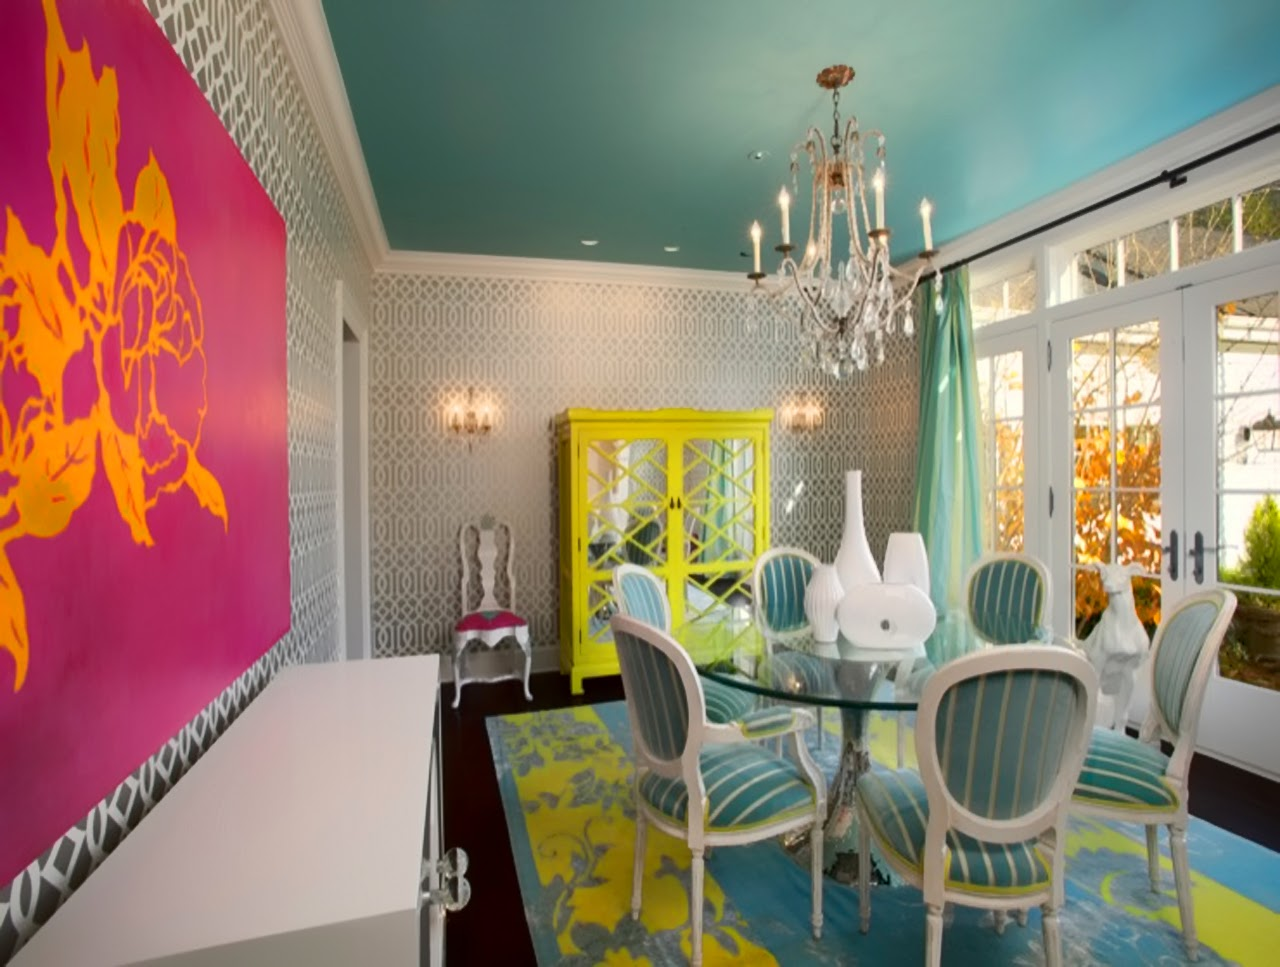 Sherwin Williams Wallpaper ~ WallpaperYork | Brows your wallpaper here | Best quality wallpapers